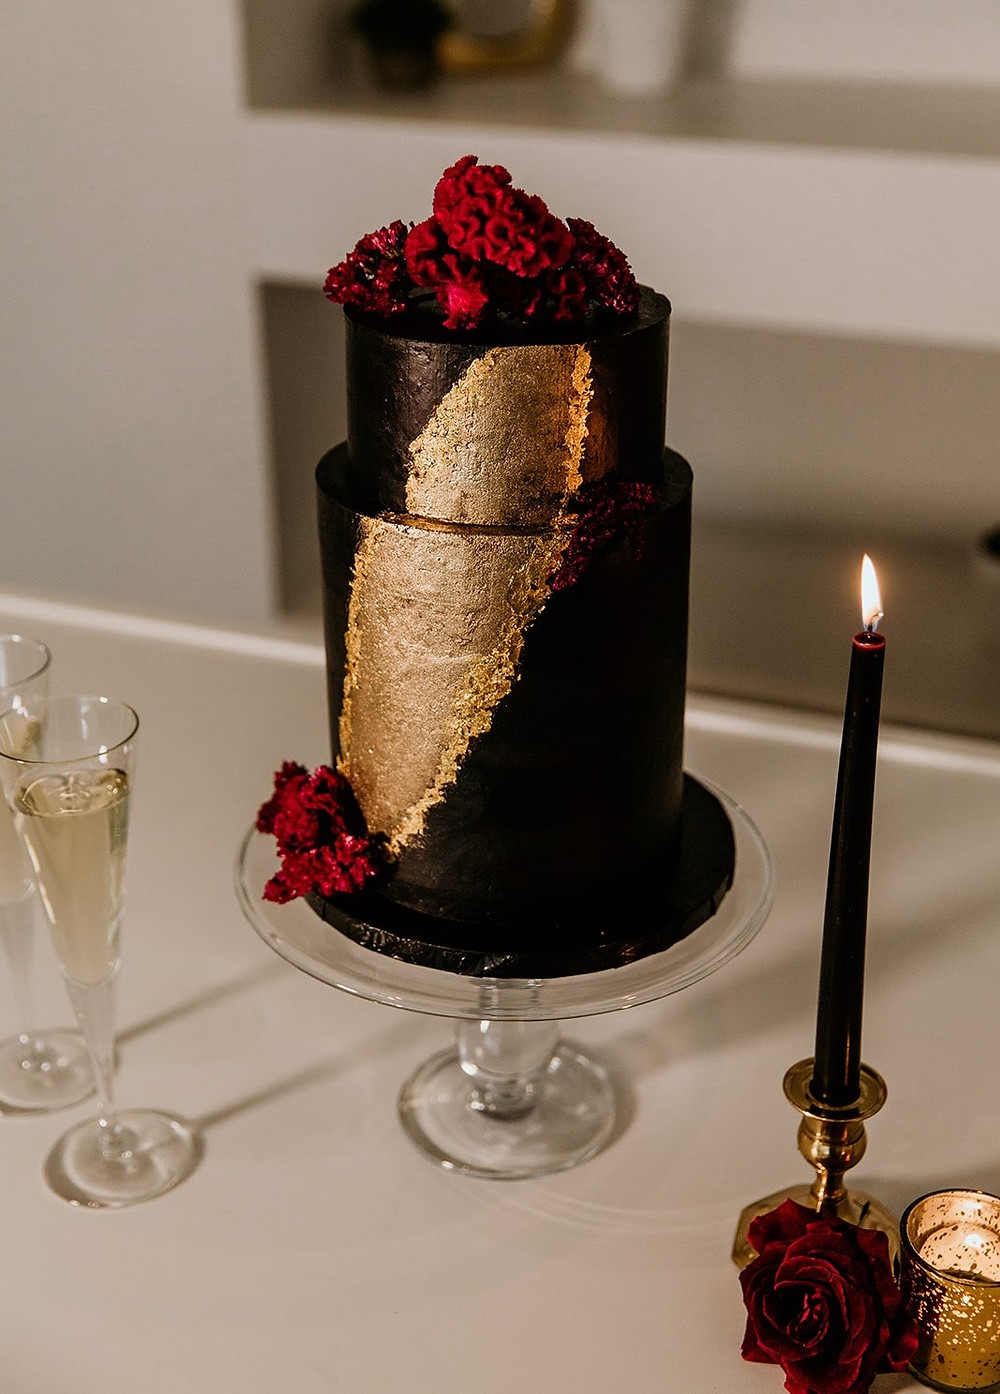 Black and gold wedding cake with burgundy flowers